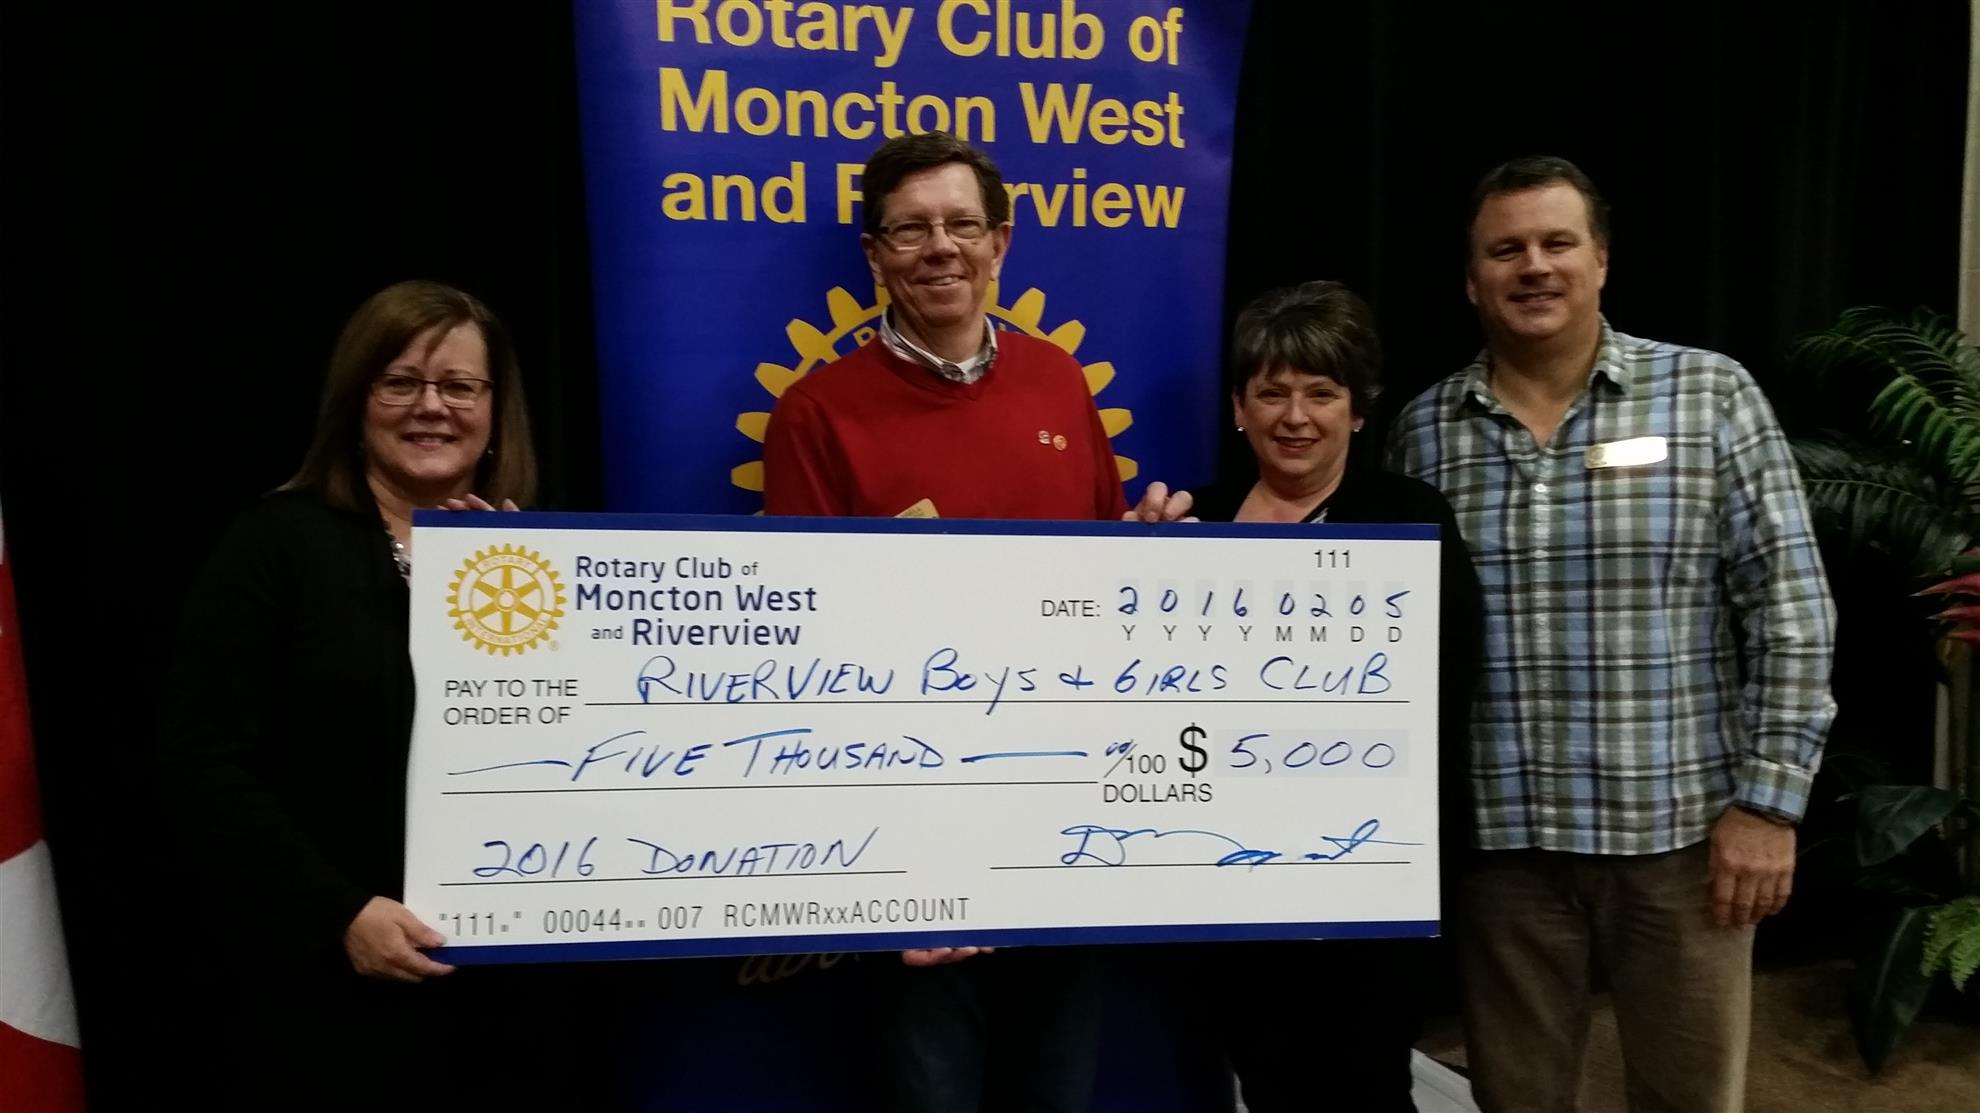 Boys and Girls Club of Riverview support